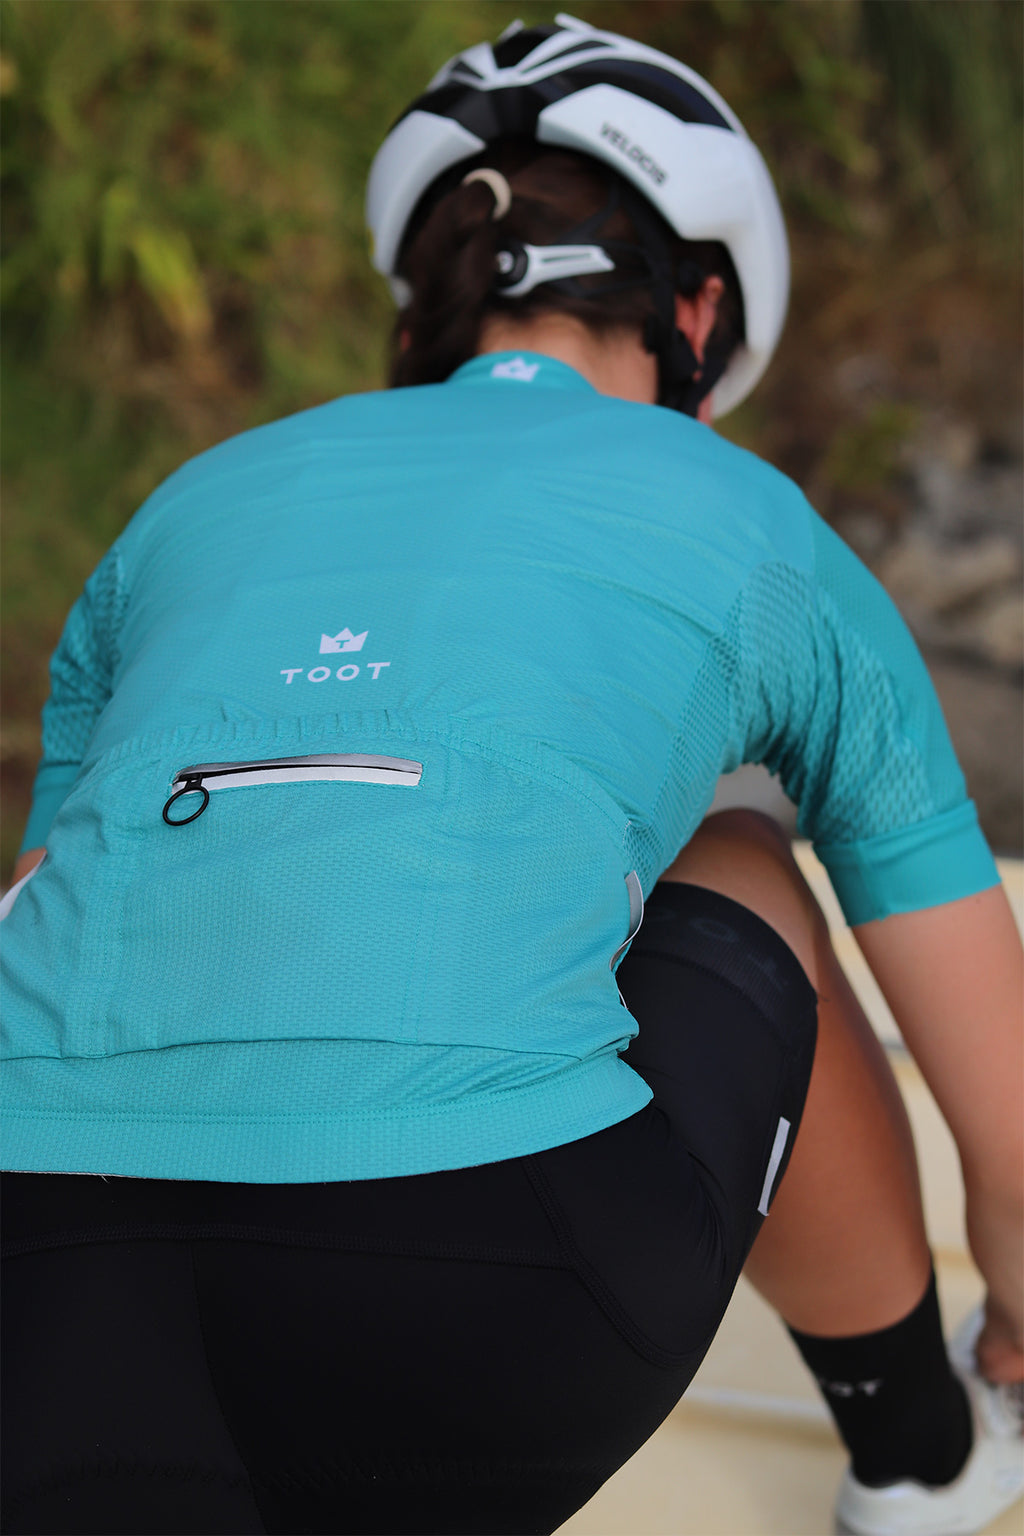 TOOT - WOMENS PRO X LITTLE TEAL JERSEY